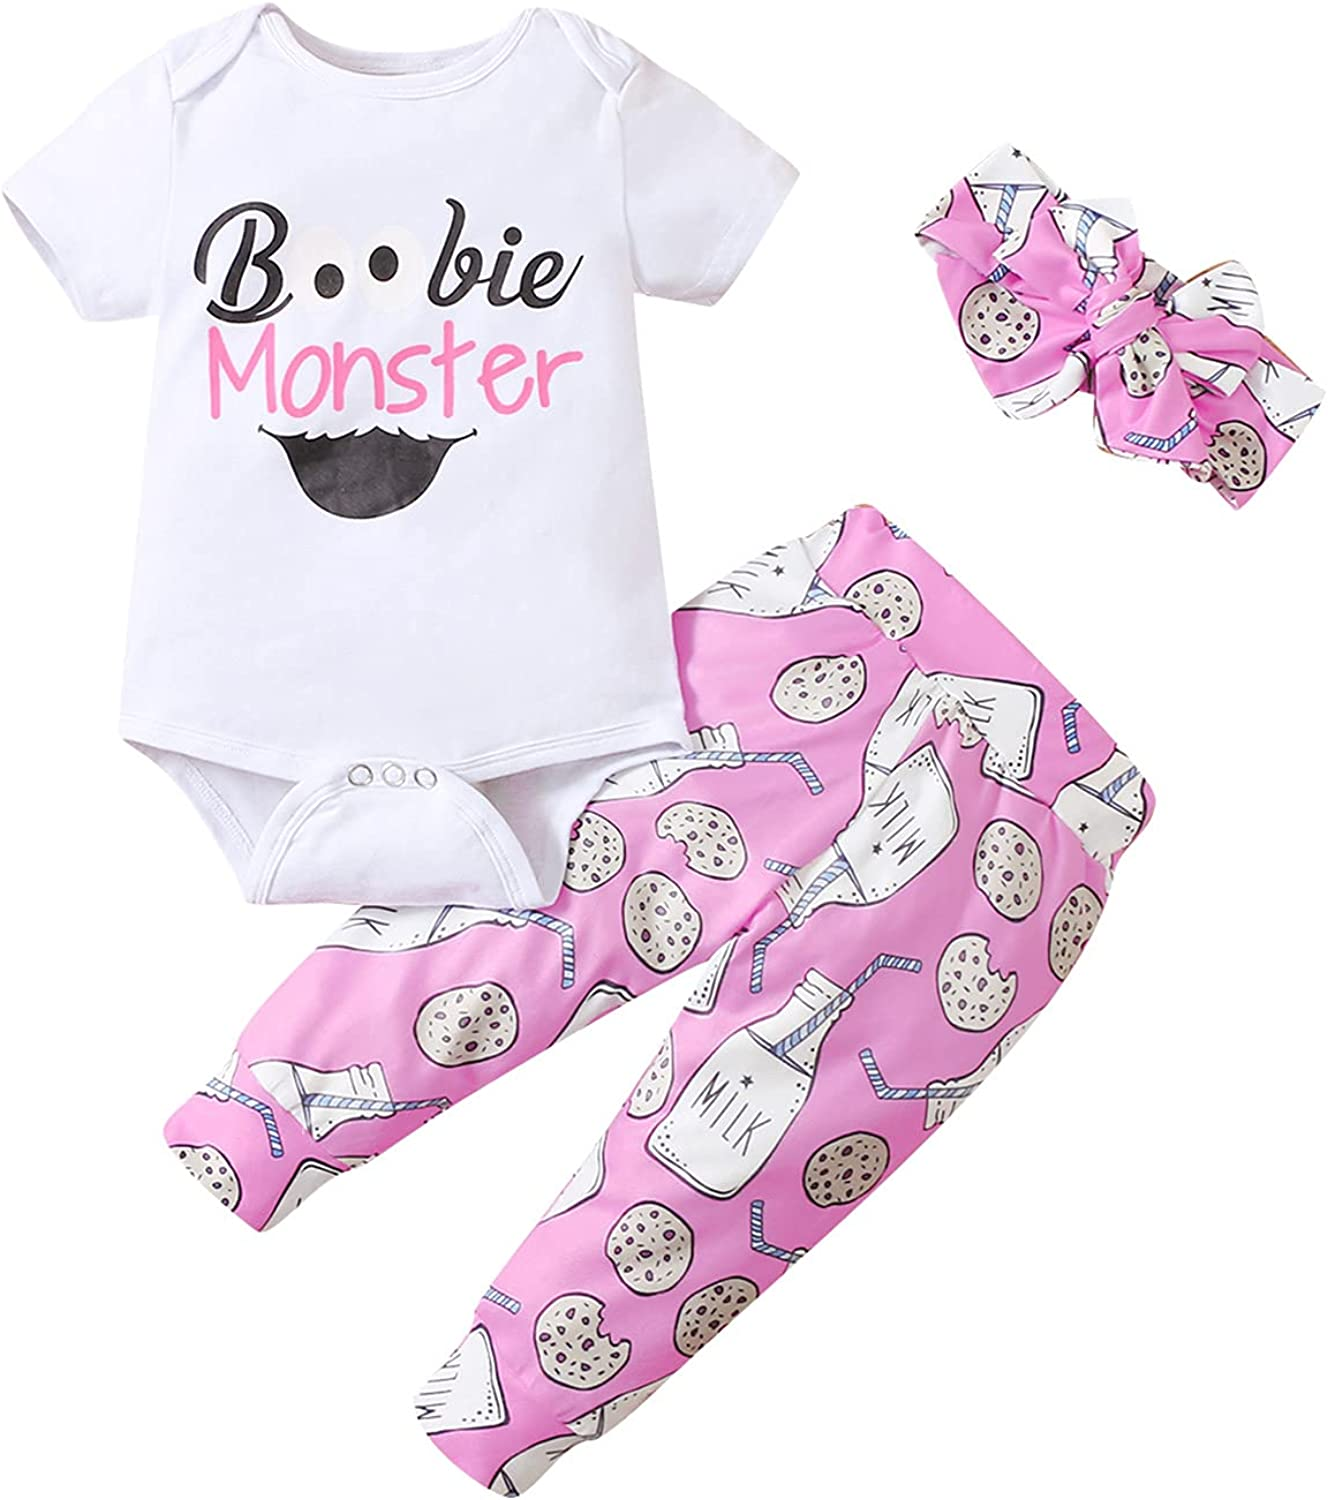 Dramiposs Newborn Boy Halloween Outfits Baby Boy Girl Coming Home Clothes